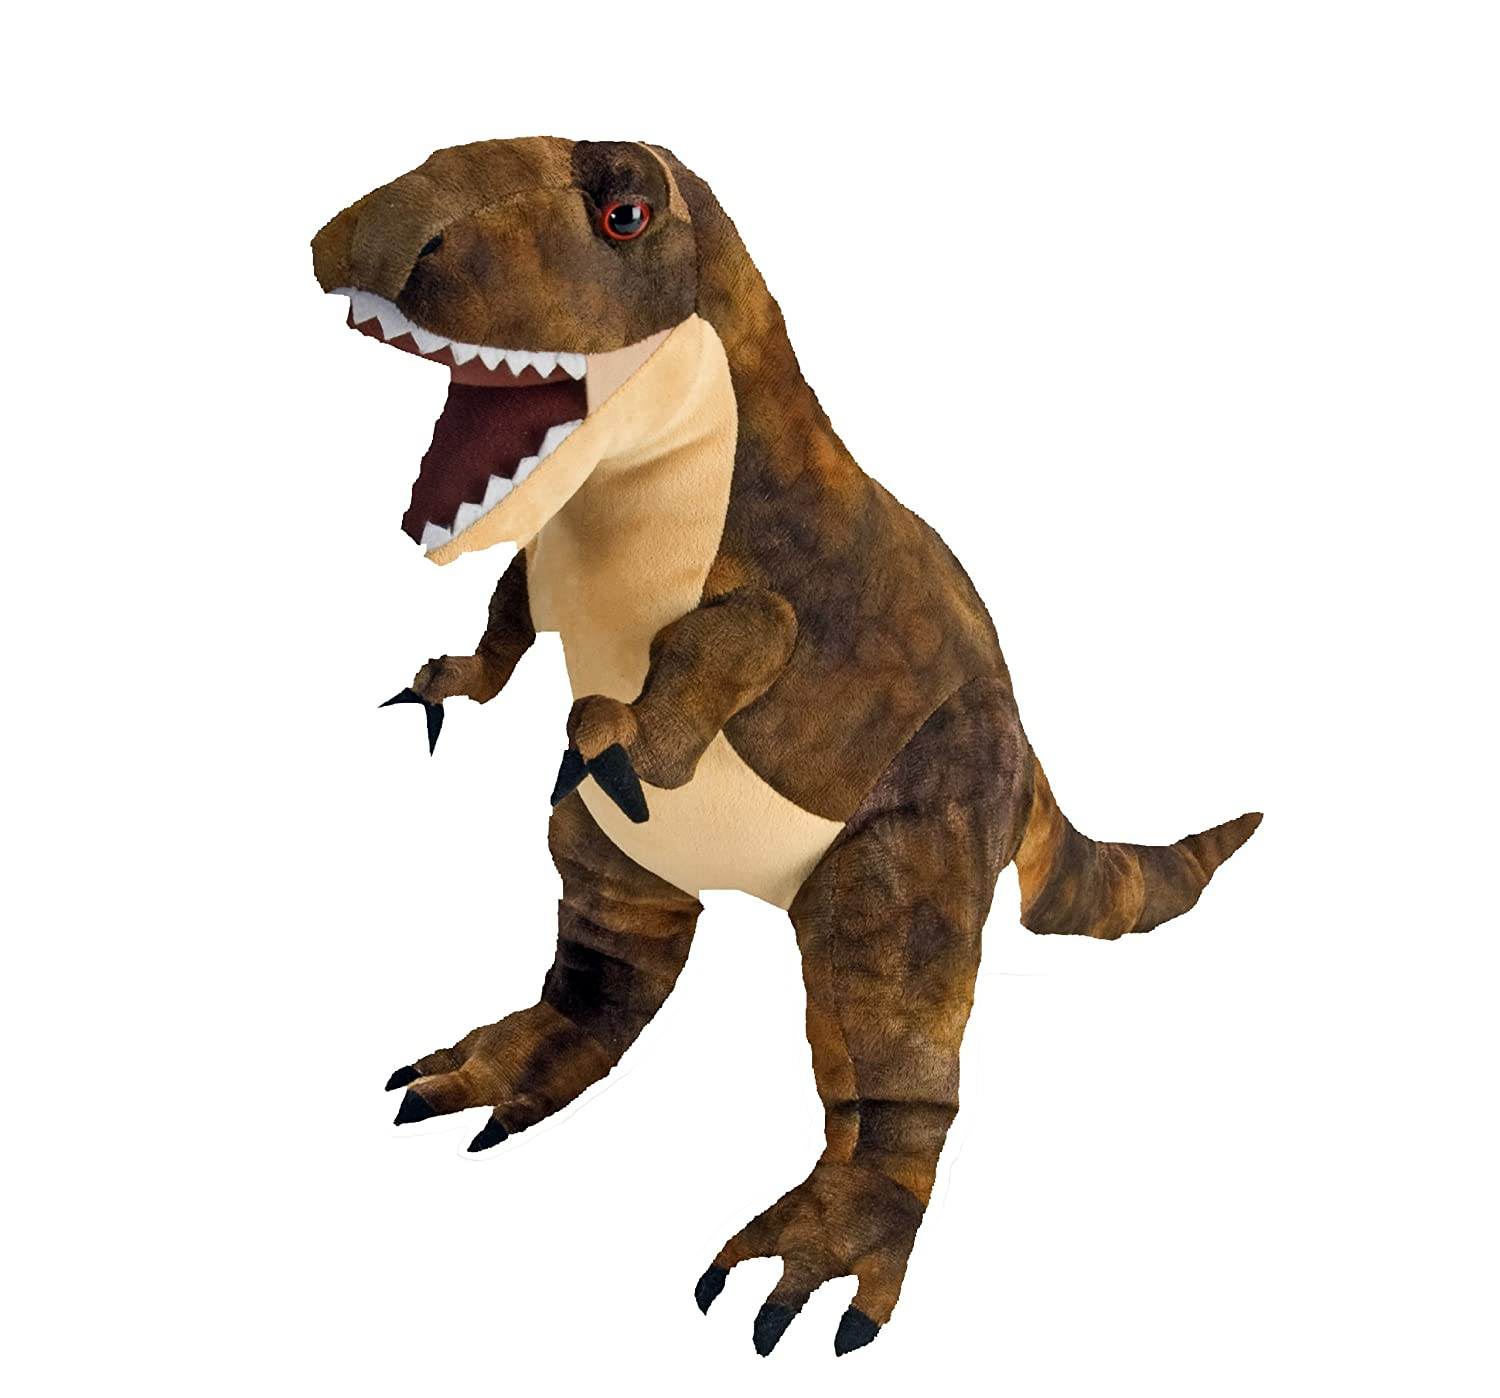 Amazon.com: Wild Republic T-Rex Plush, Dinosaur Stuffed Animal, Plush Toy, Gifts For Kids, Dinosauria 10 Inches: Toys & Games